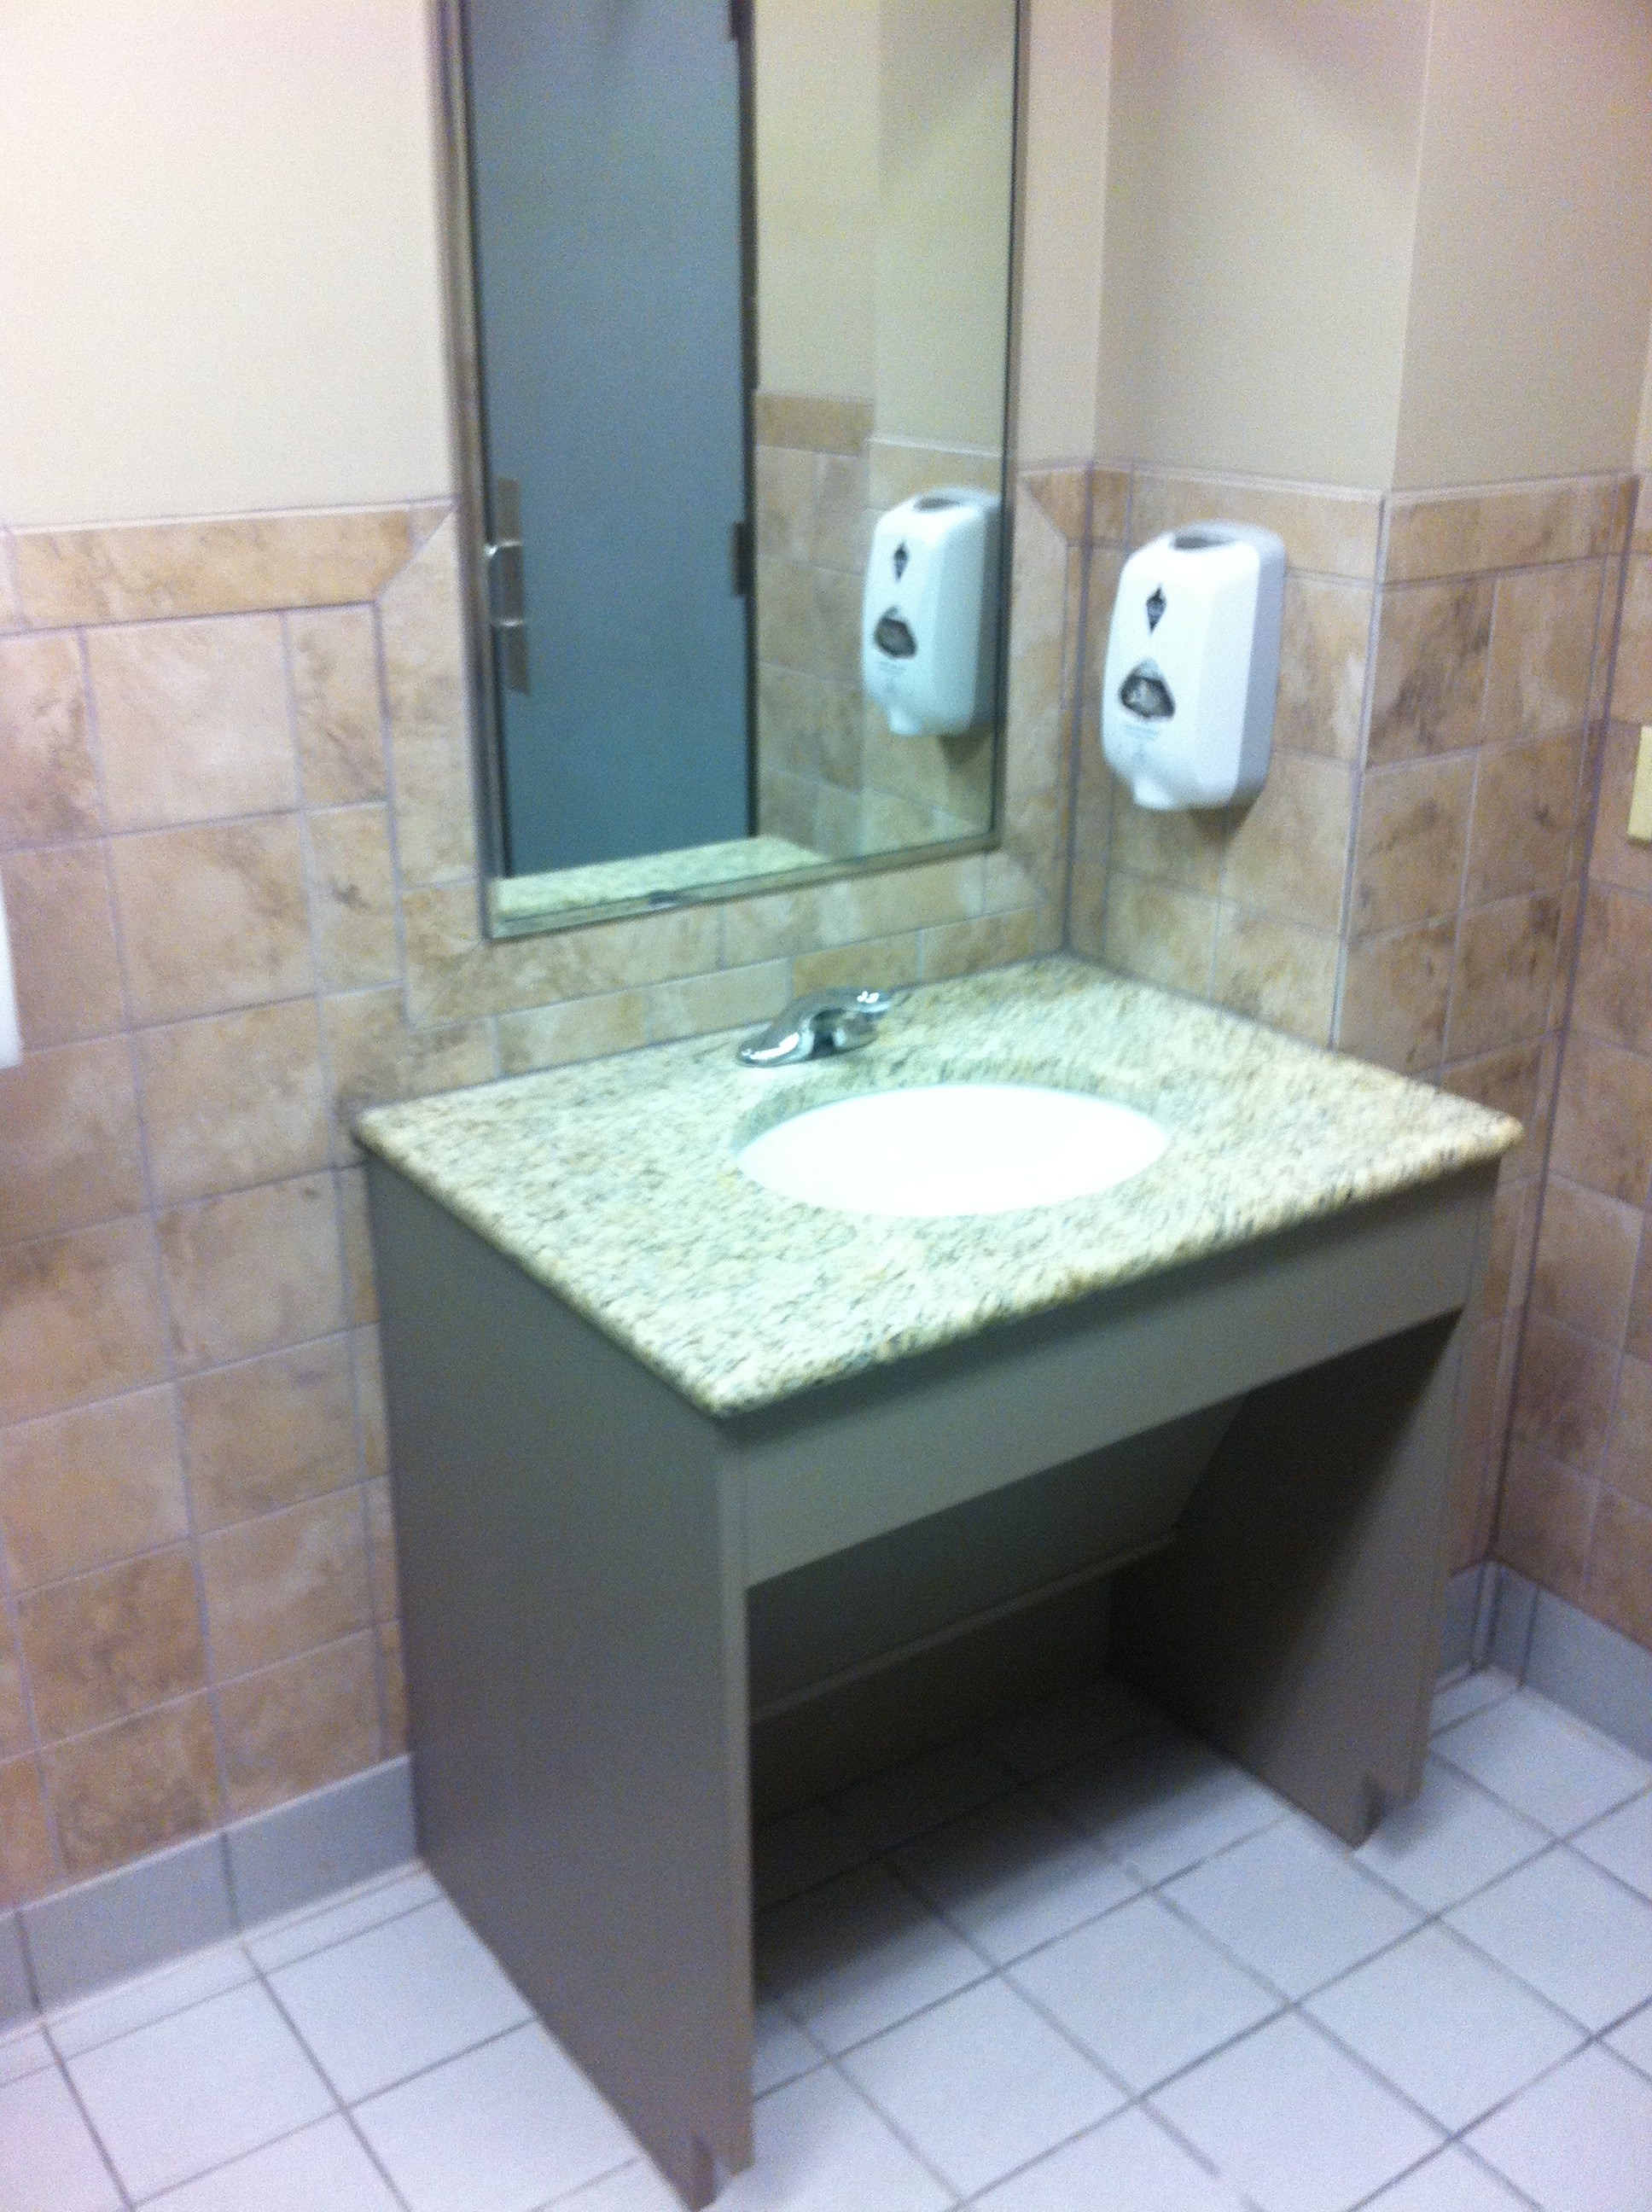 Vanity access for wheelchair -  Roll Under Vanity With Lift Out Panel For Protection From Pipes